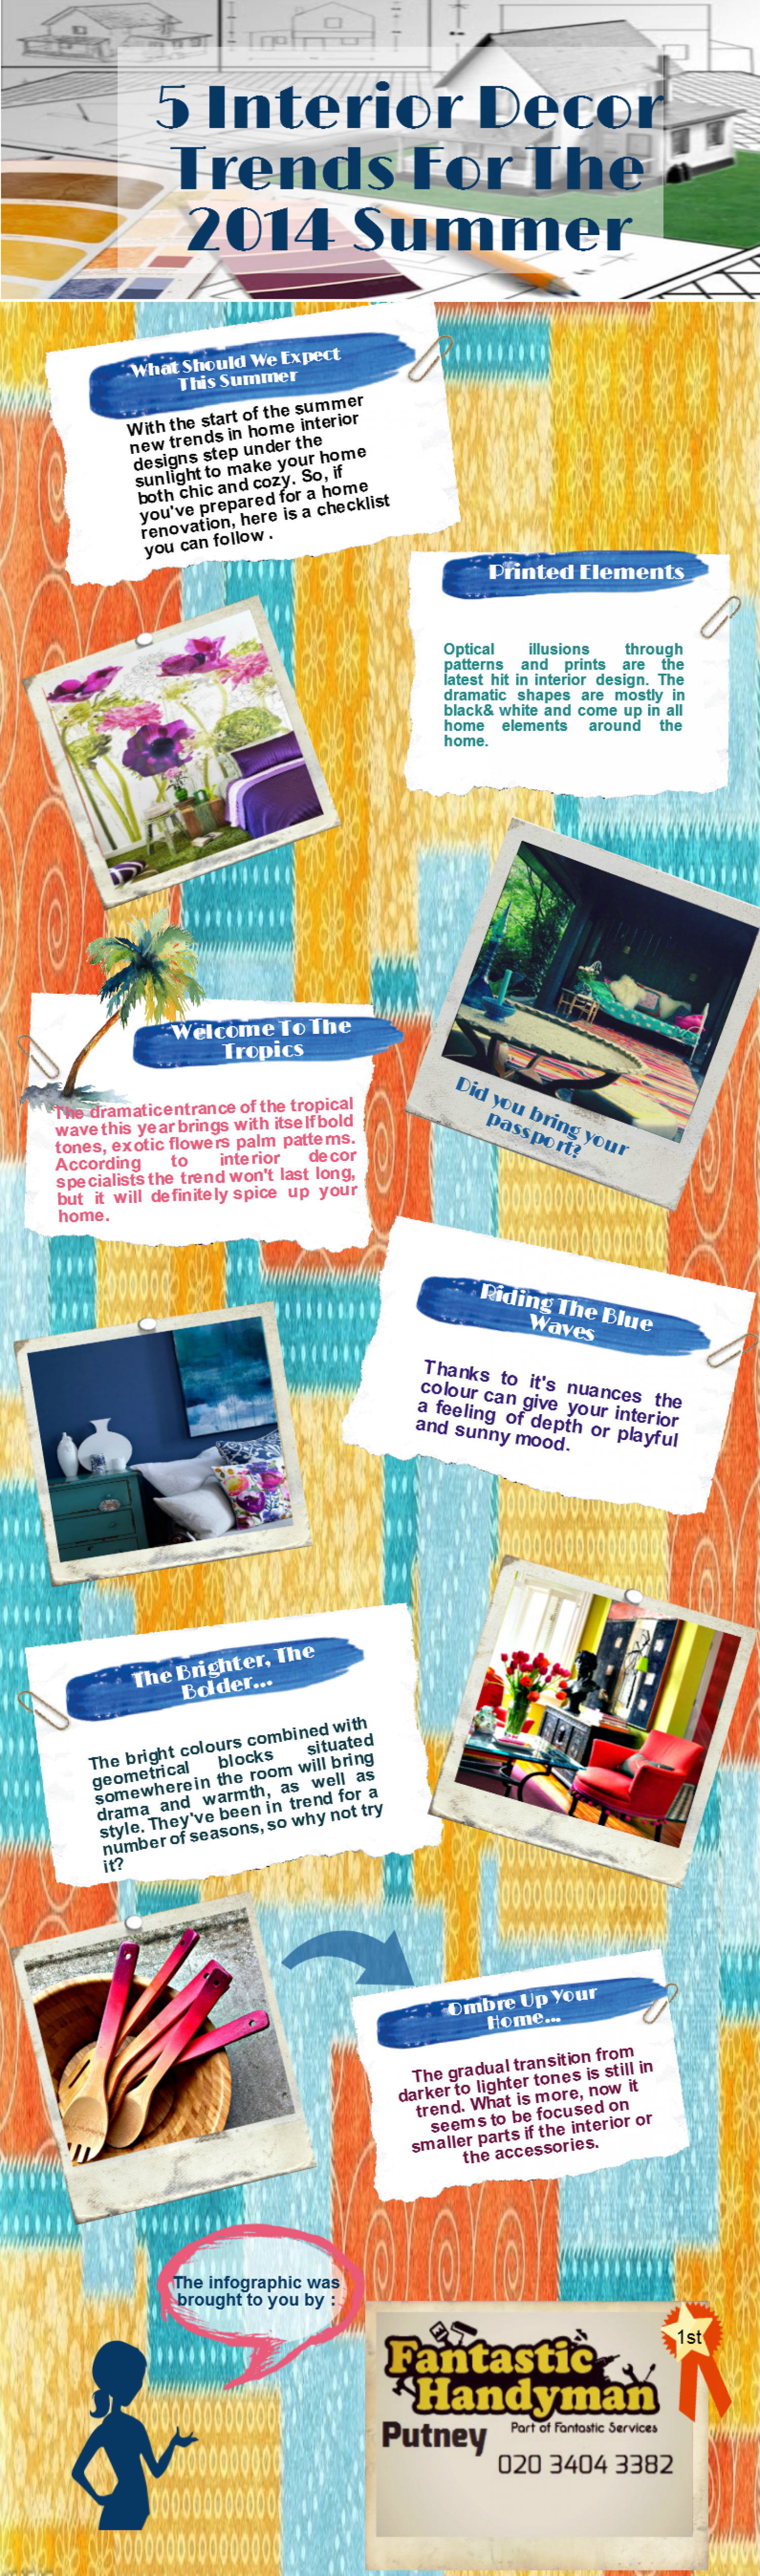 5 interior decor trends for the 2014 summer for Interior trends 2014